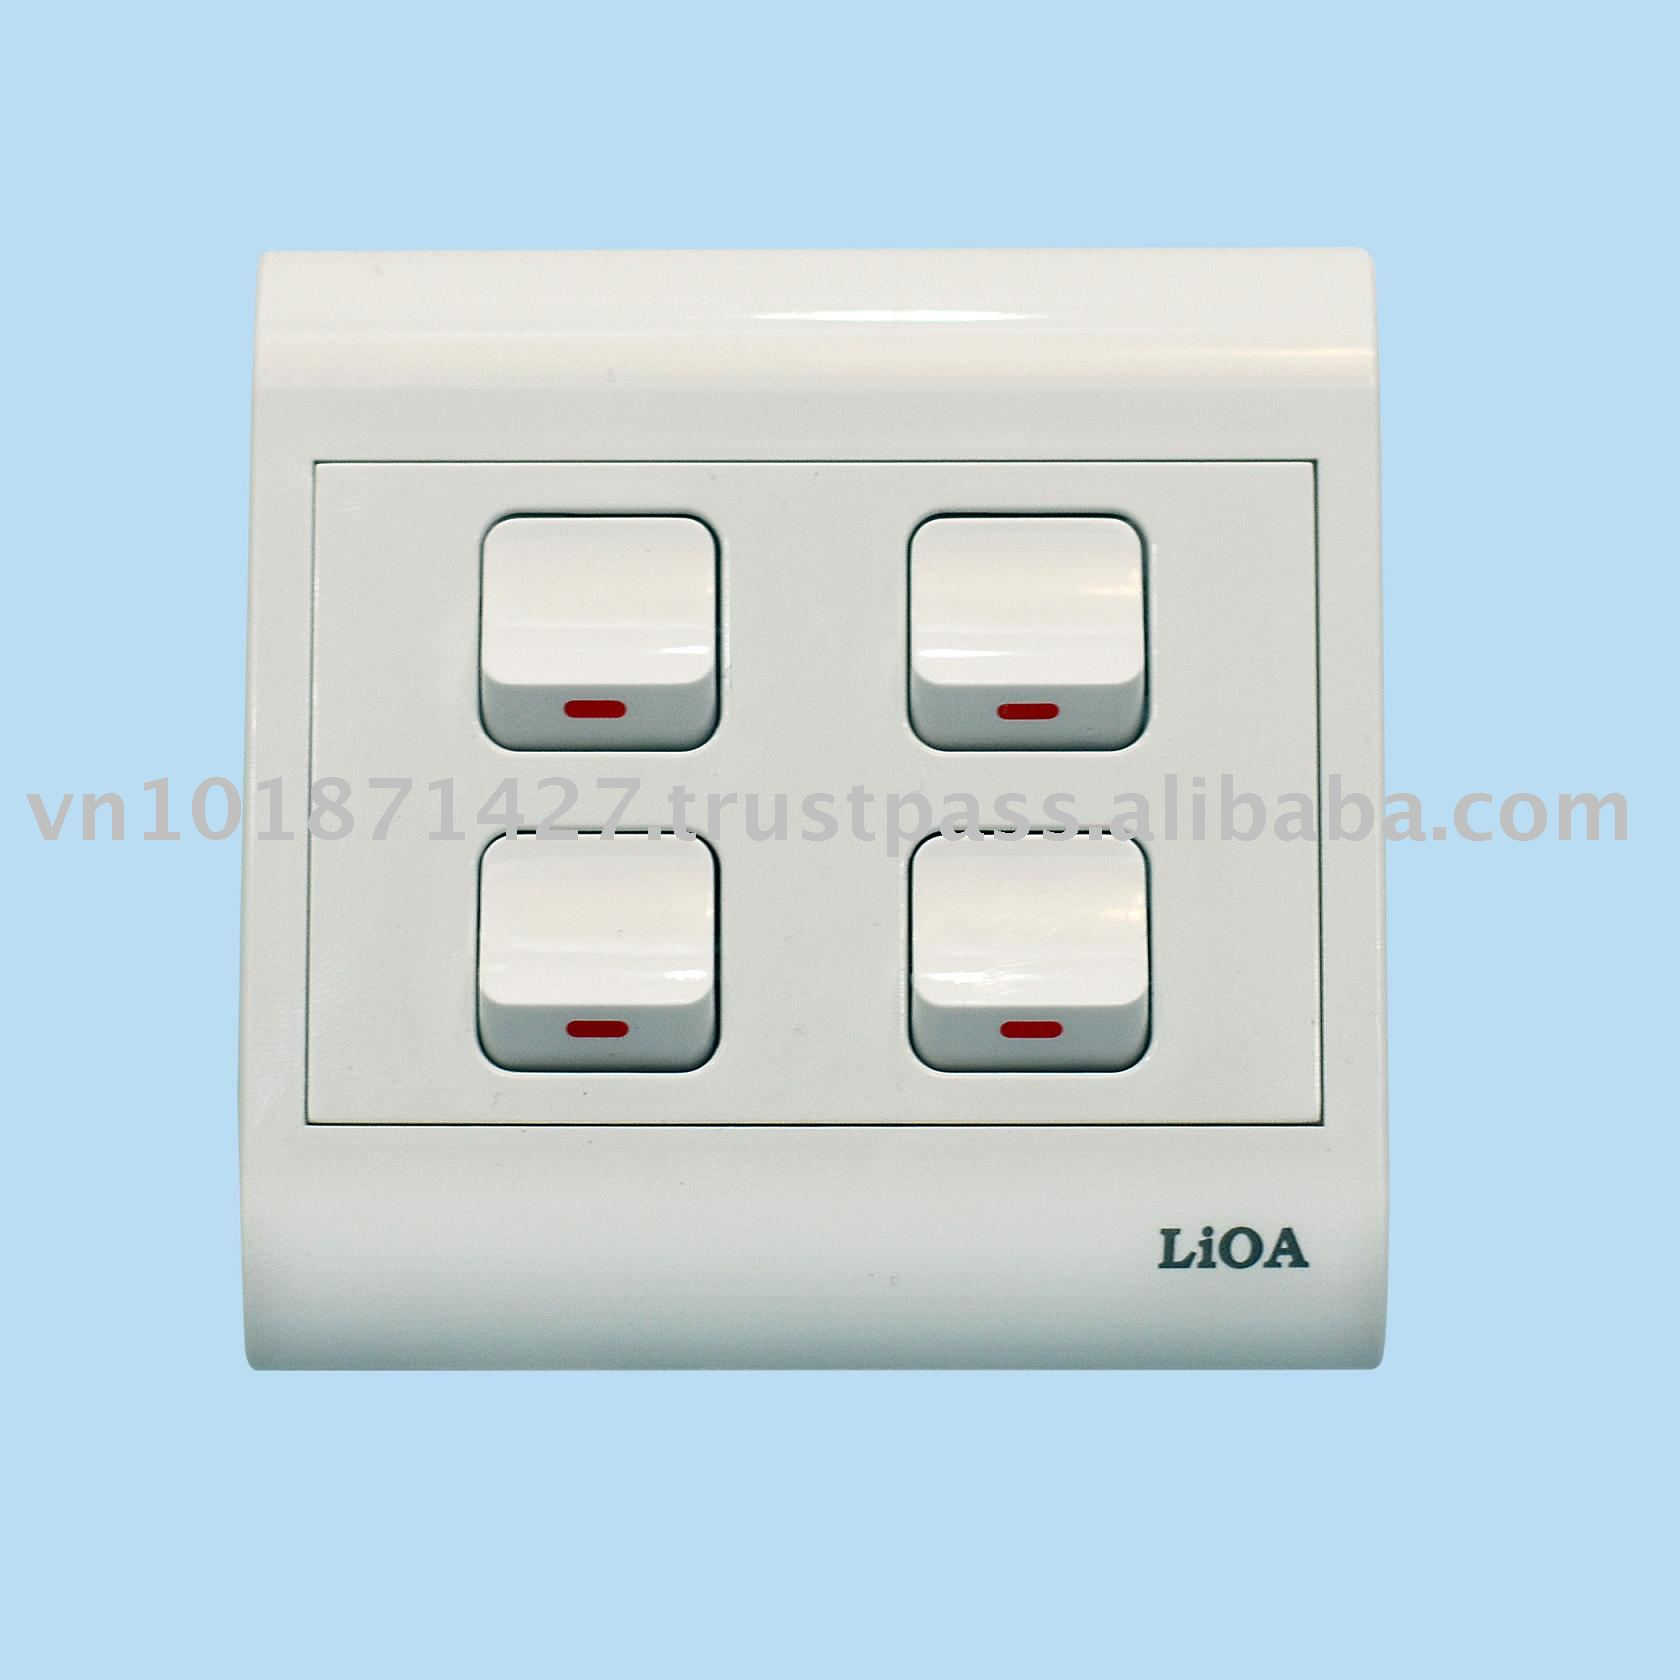 Vietnam Wall Switch, Vietnam Wall Switch Manufacturers and Suppliers ... for Wall Switches And Sockets  70ref